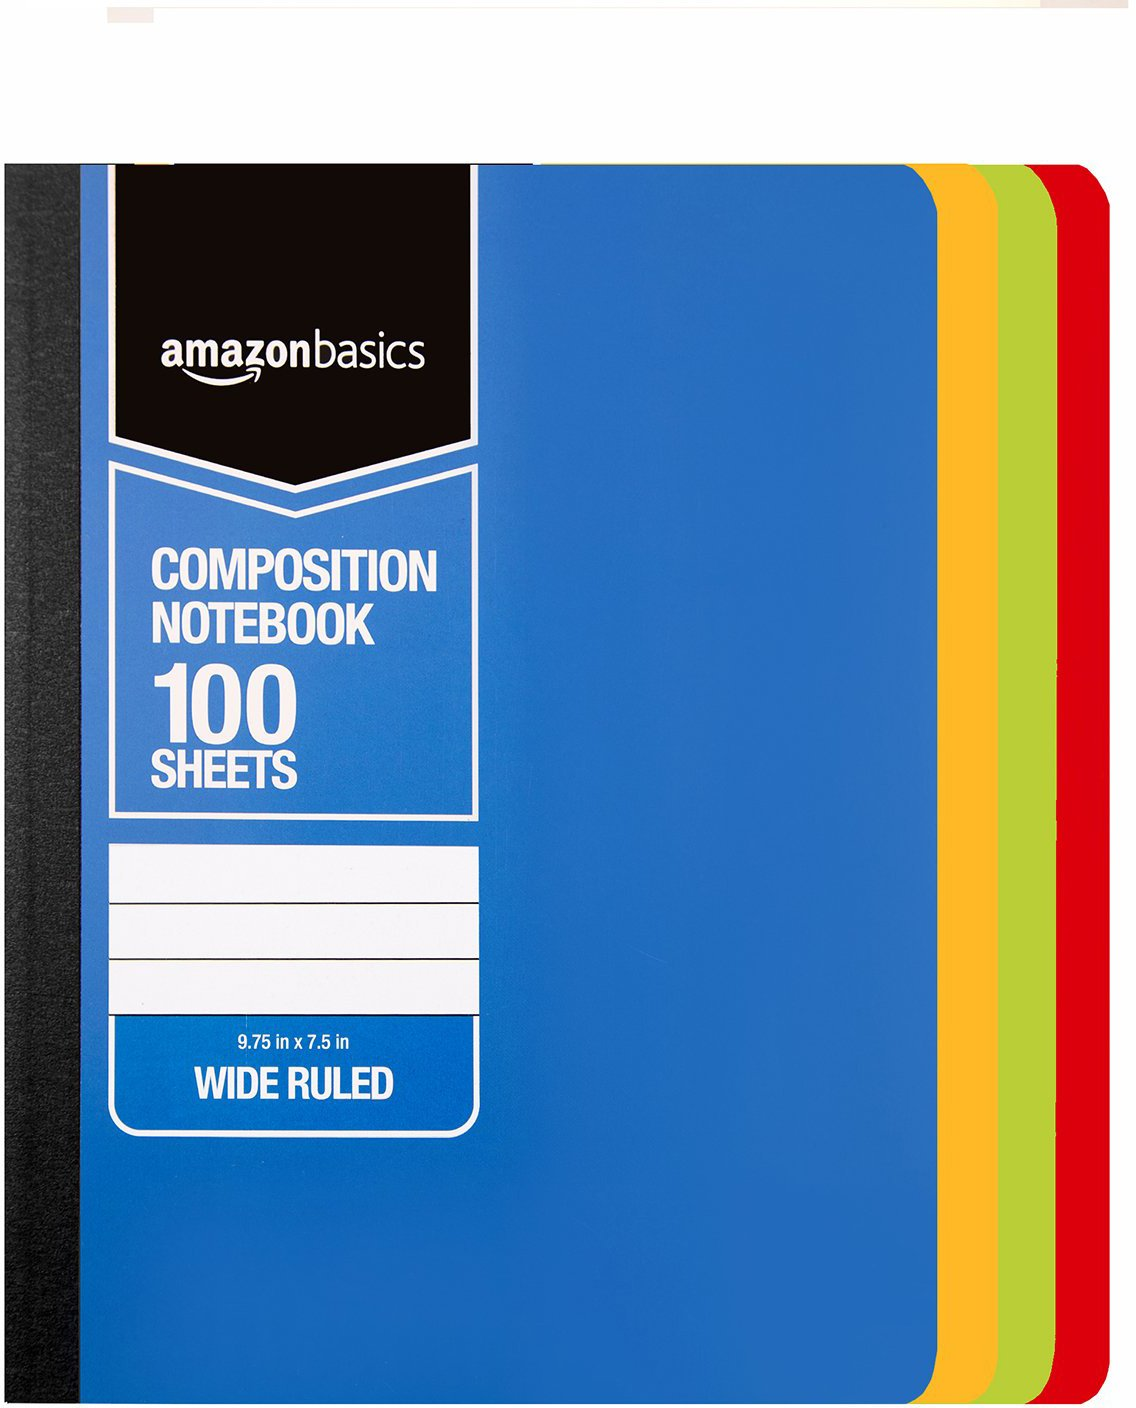 AmazonBasics Wide Ruled Composition Notebook, 100 Sheet, Assorted Solid Colors, 36-Pack